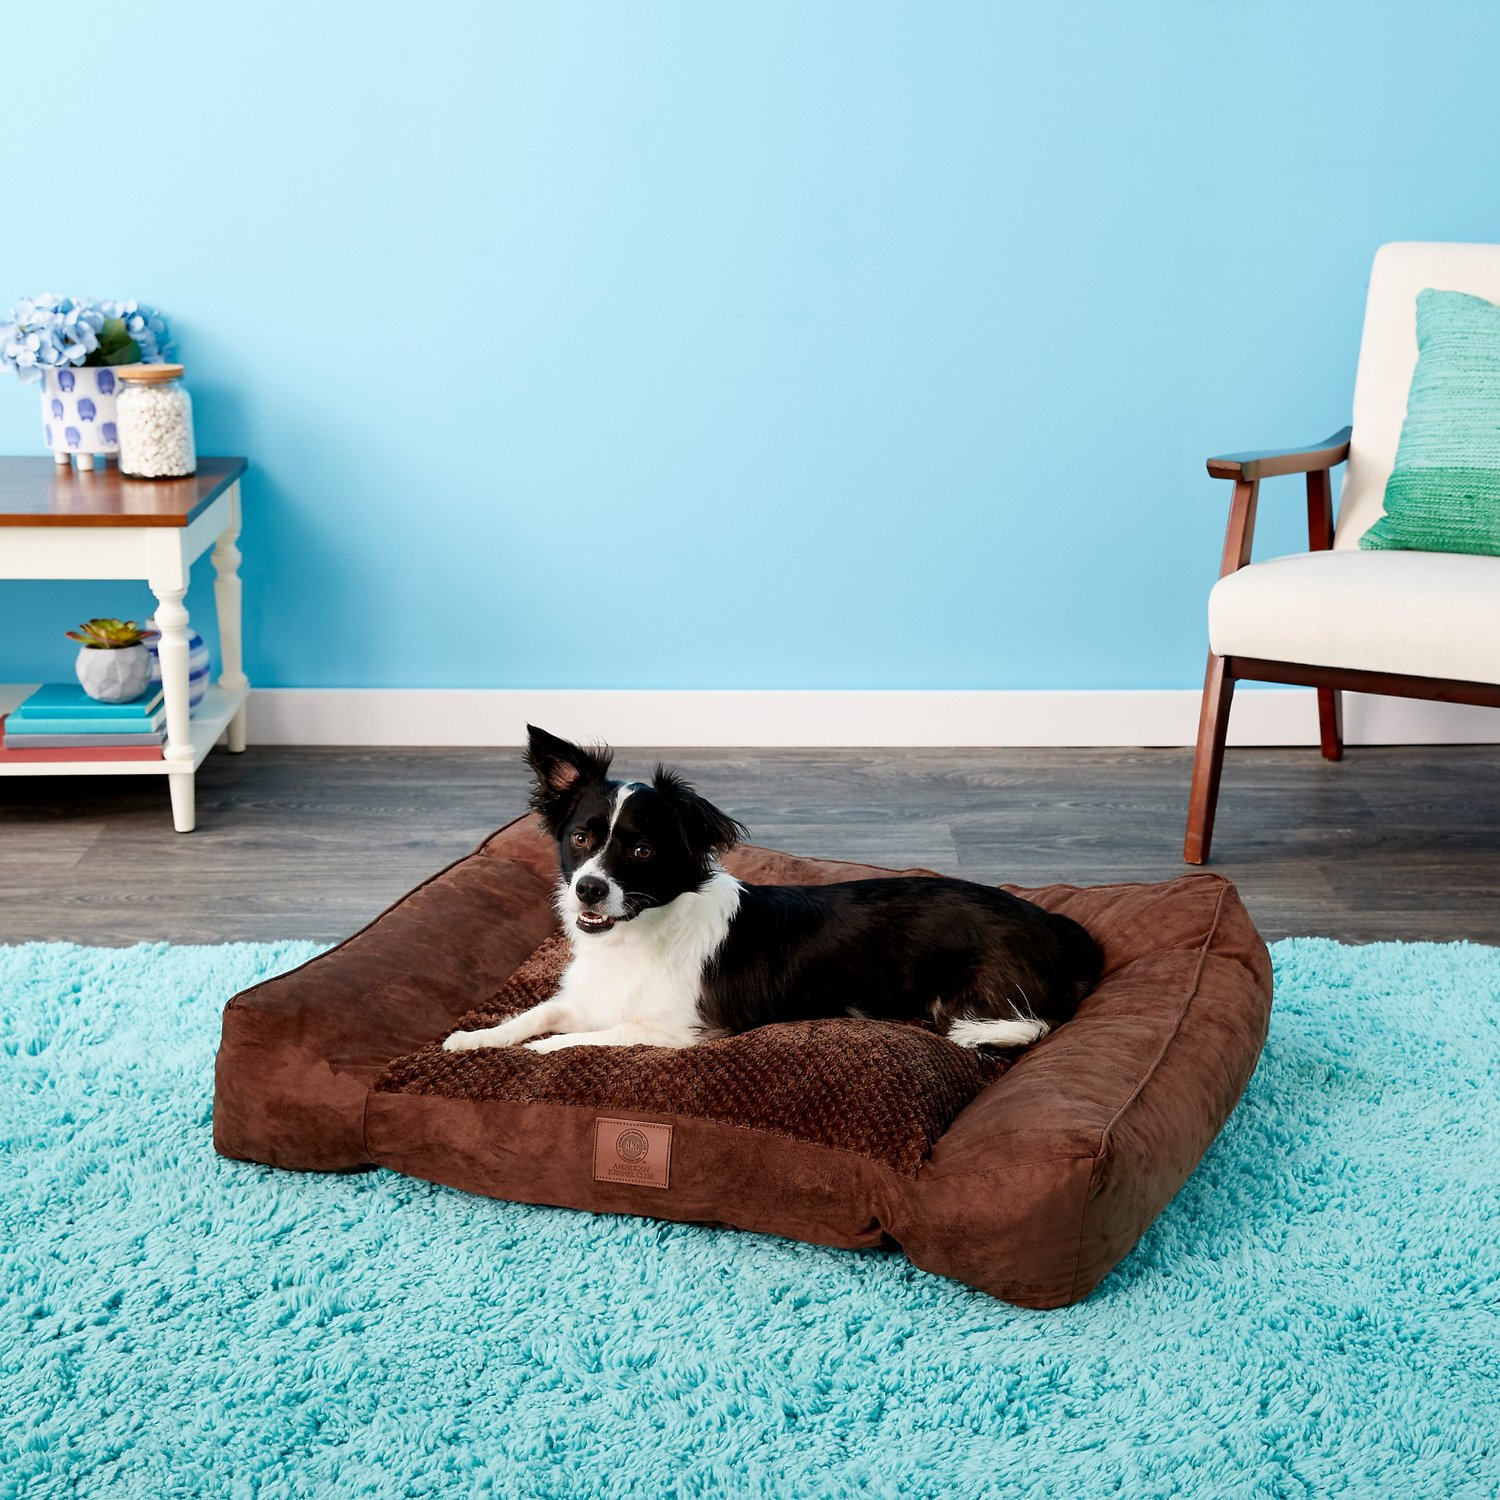 American Kennel Club Memory Foam Sofa Extra Large Dog Bed, Brown